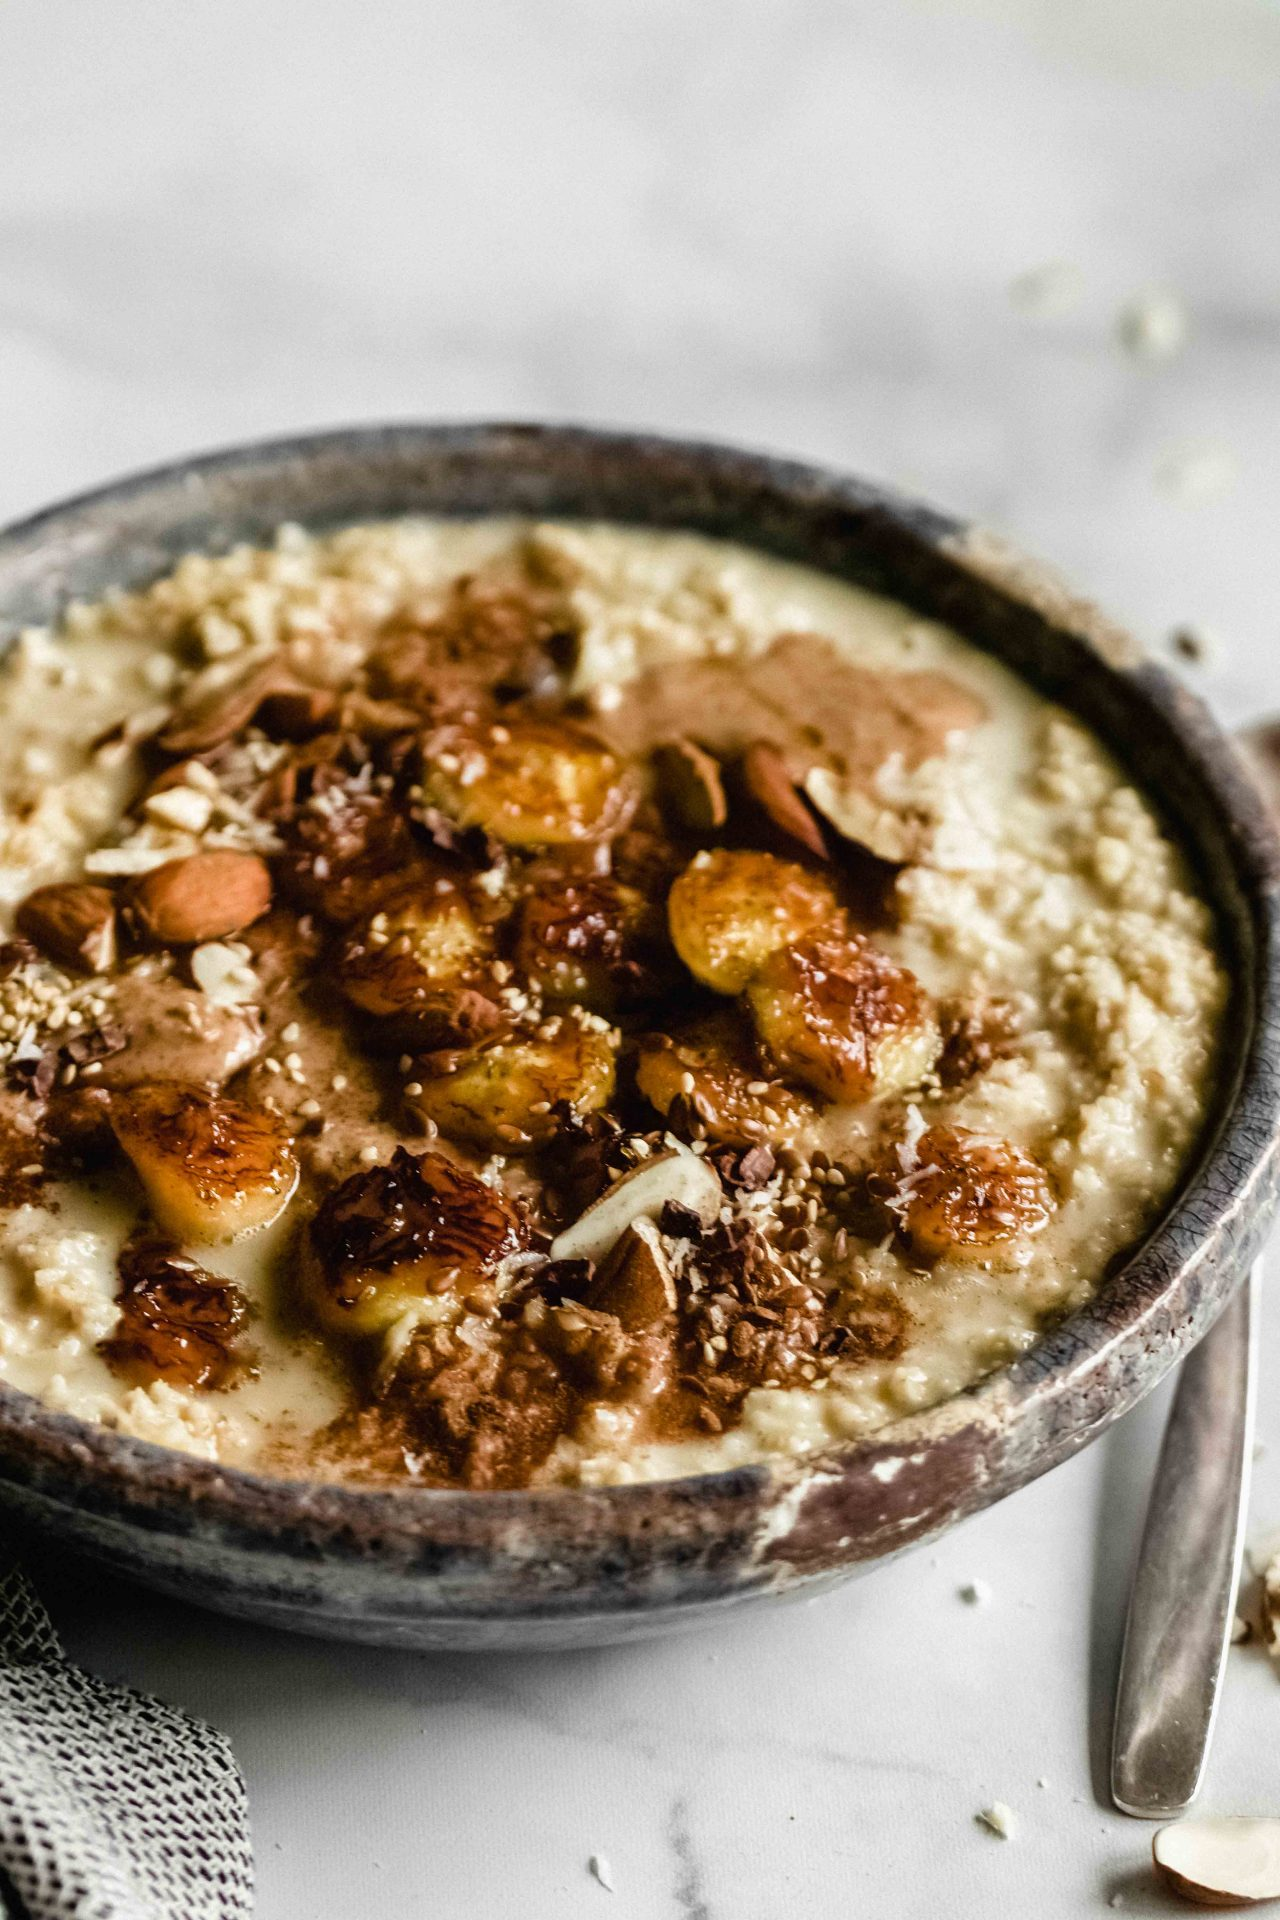 Cardamom Porridge with caramelized bananas